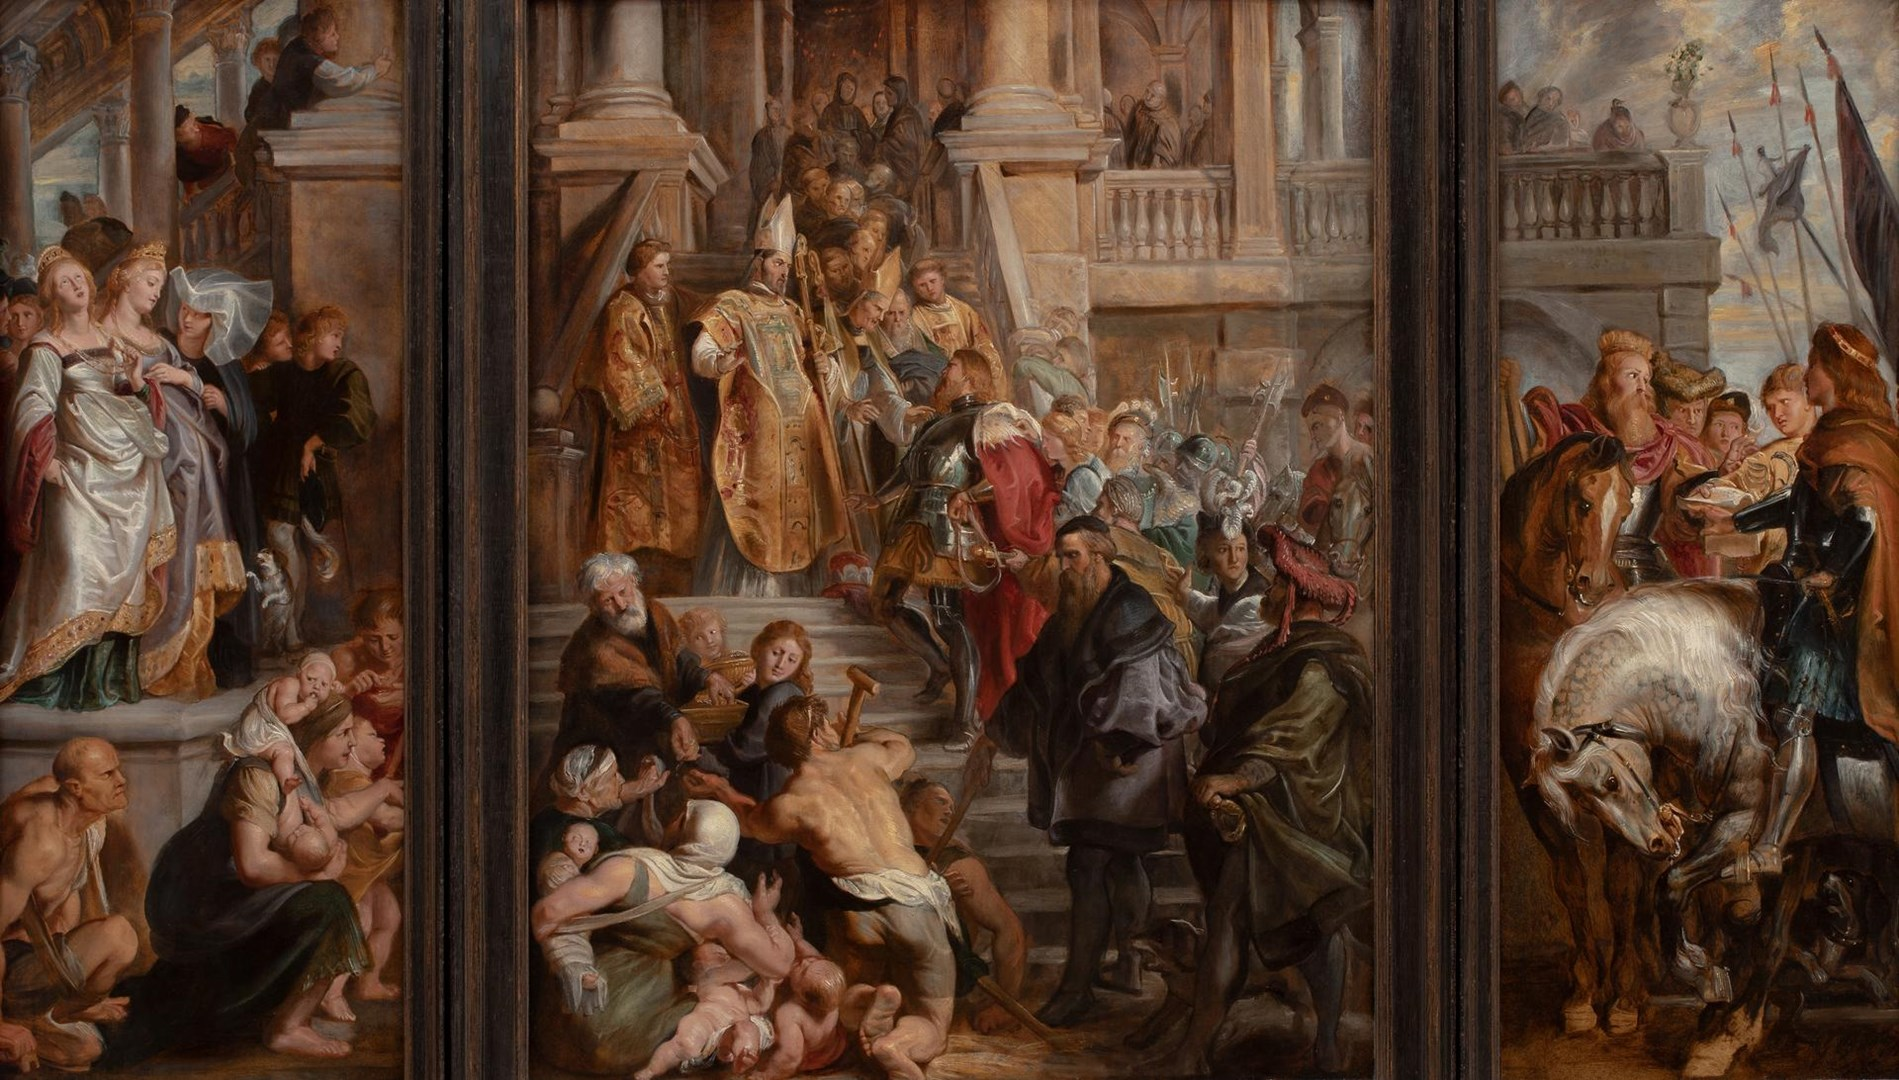 Oil Sketch for High Altarpiece, St Bavo, Ghent by Peter Paul Rubens